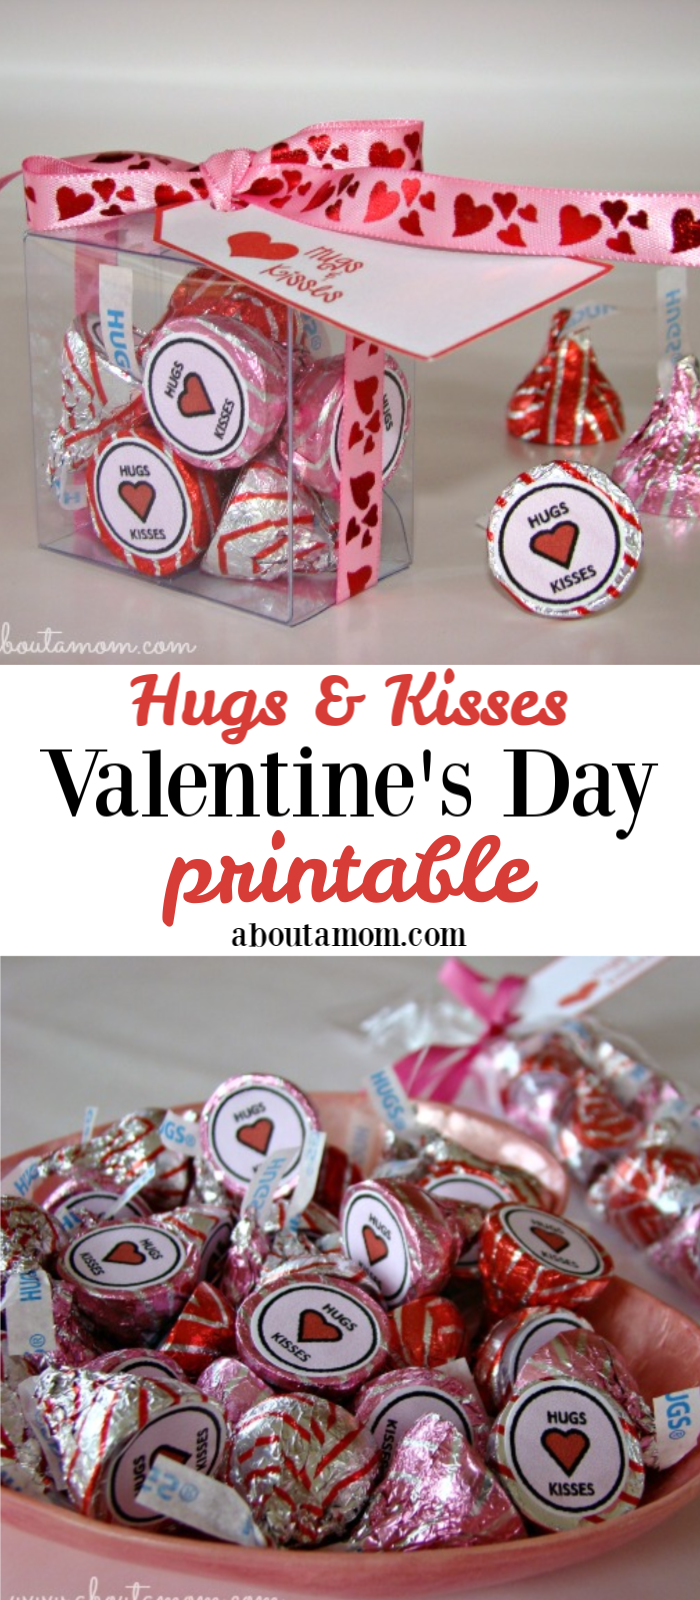 Give a sweet gift with these Hugs and Kisses Valentine's Day printables. Included are free downloads for Hershey Kiss printable and gift tag printable.